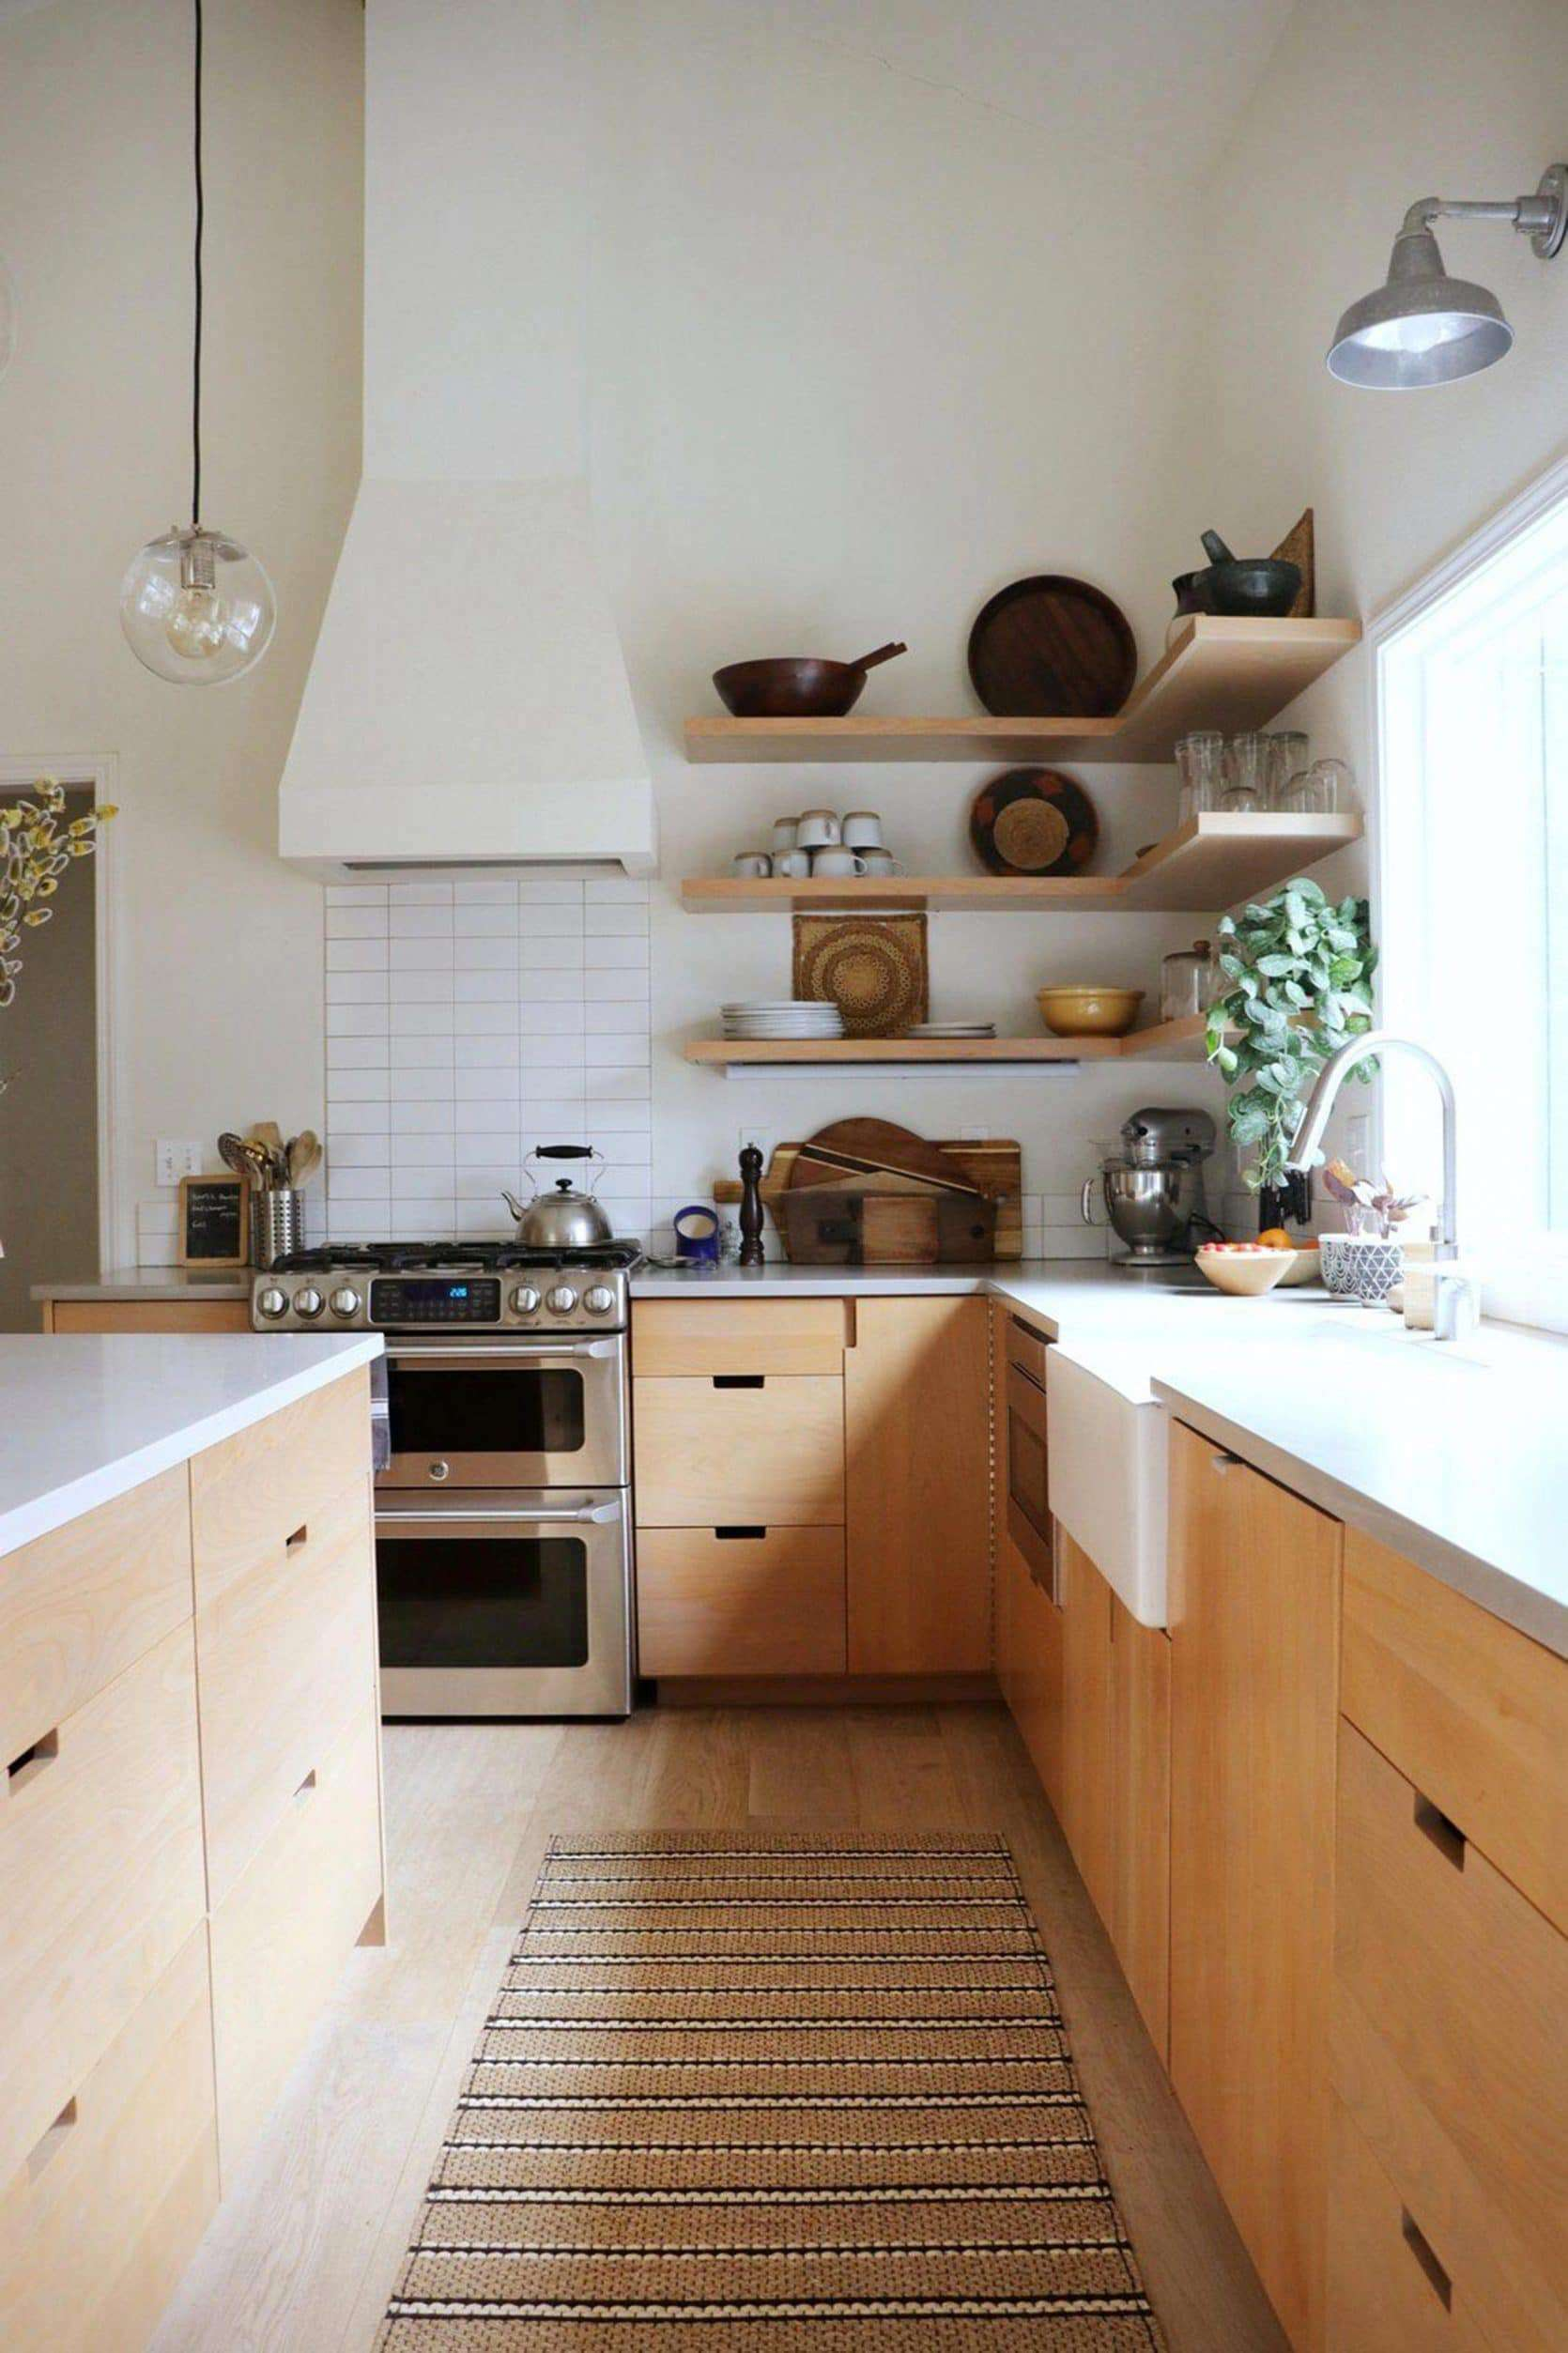 9 Kitchen Trends For 2019 We Re Betting Will Be Huge